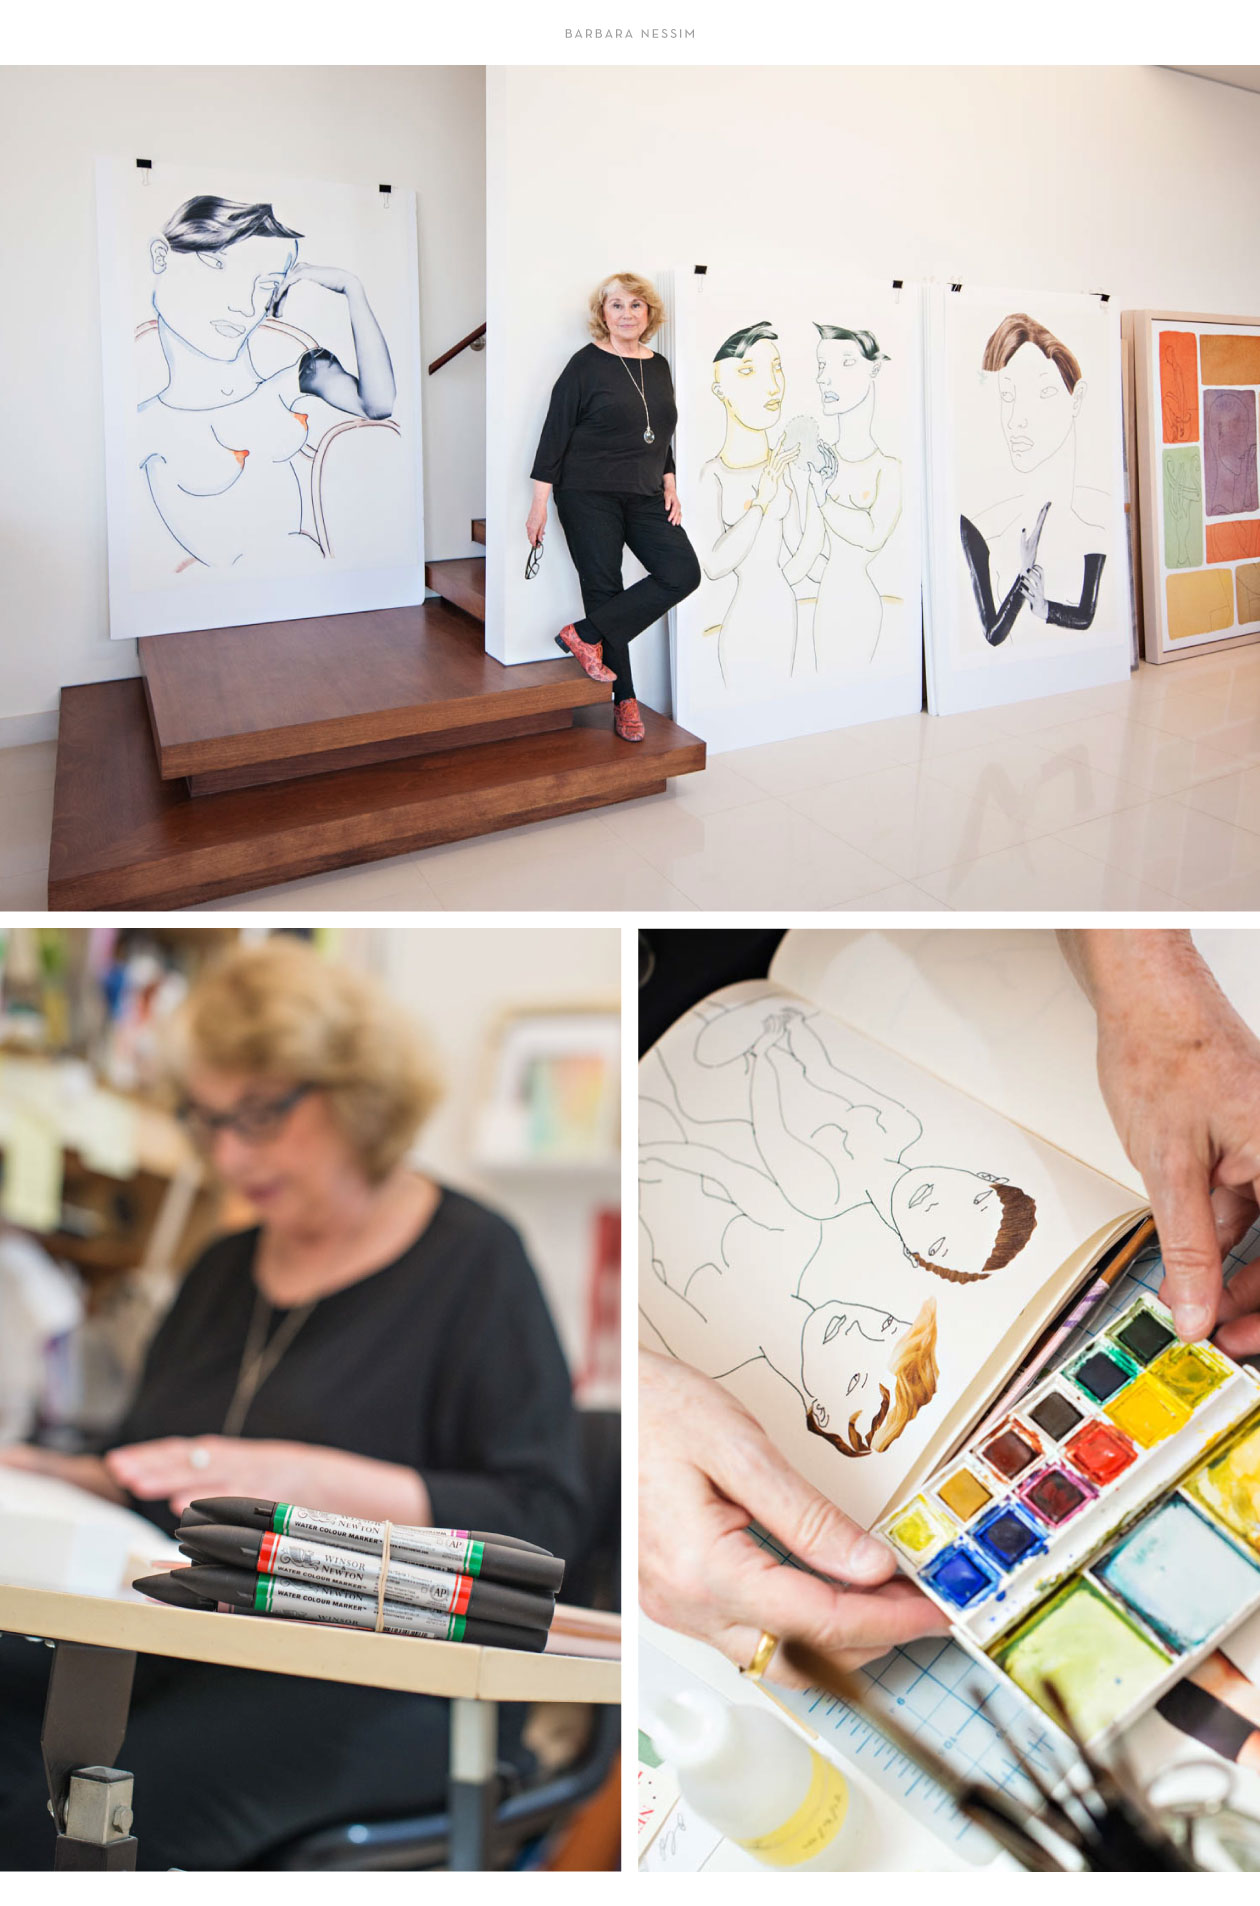 winsor and newton brand ambassador barbara nessim photography by m studio